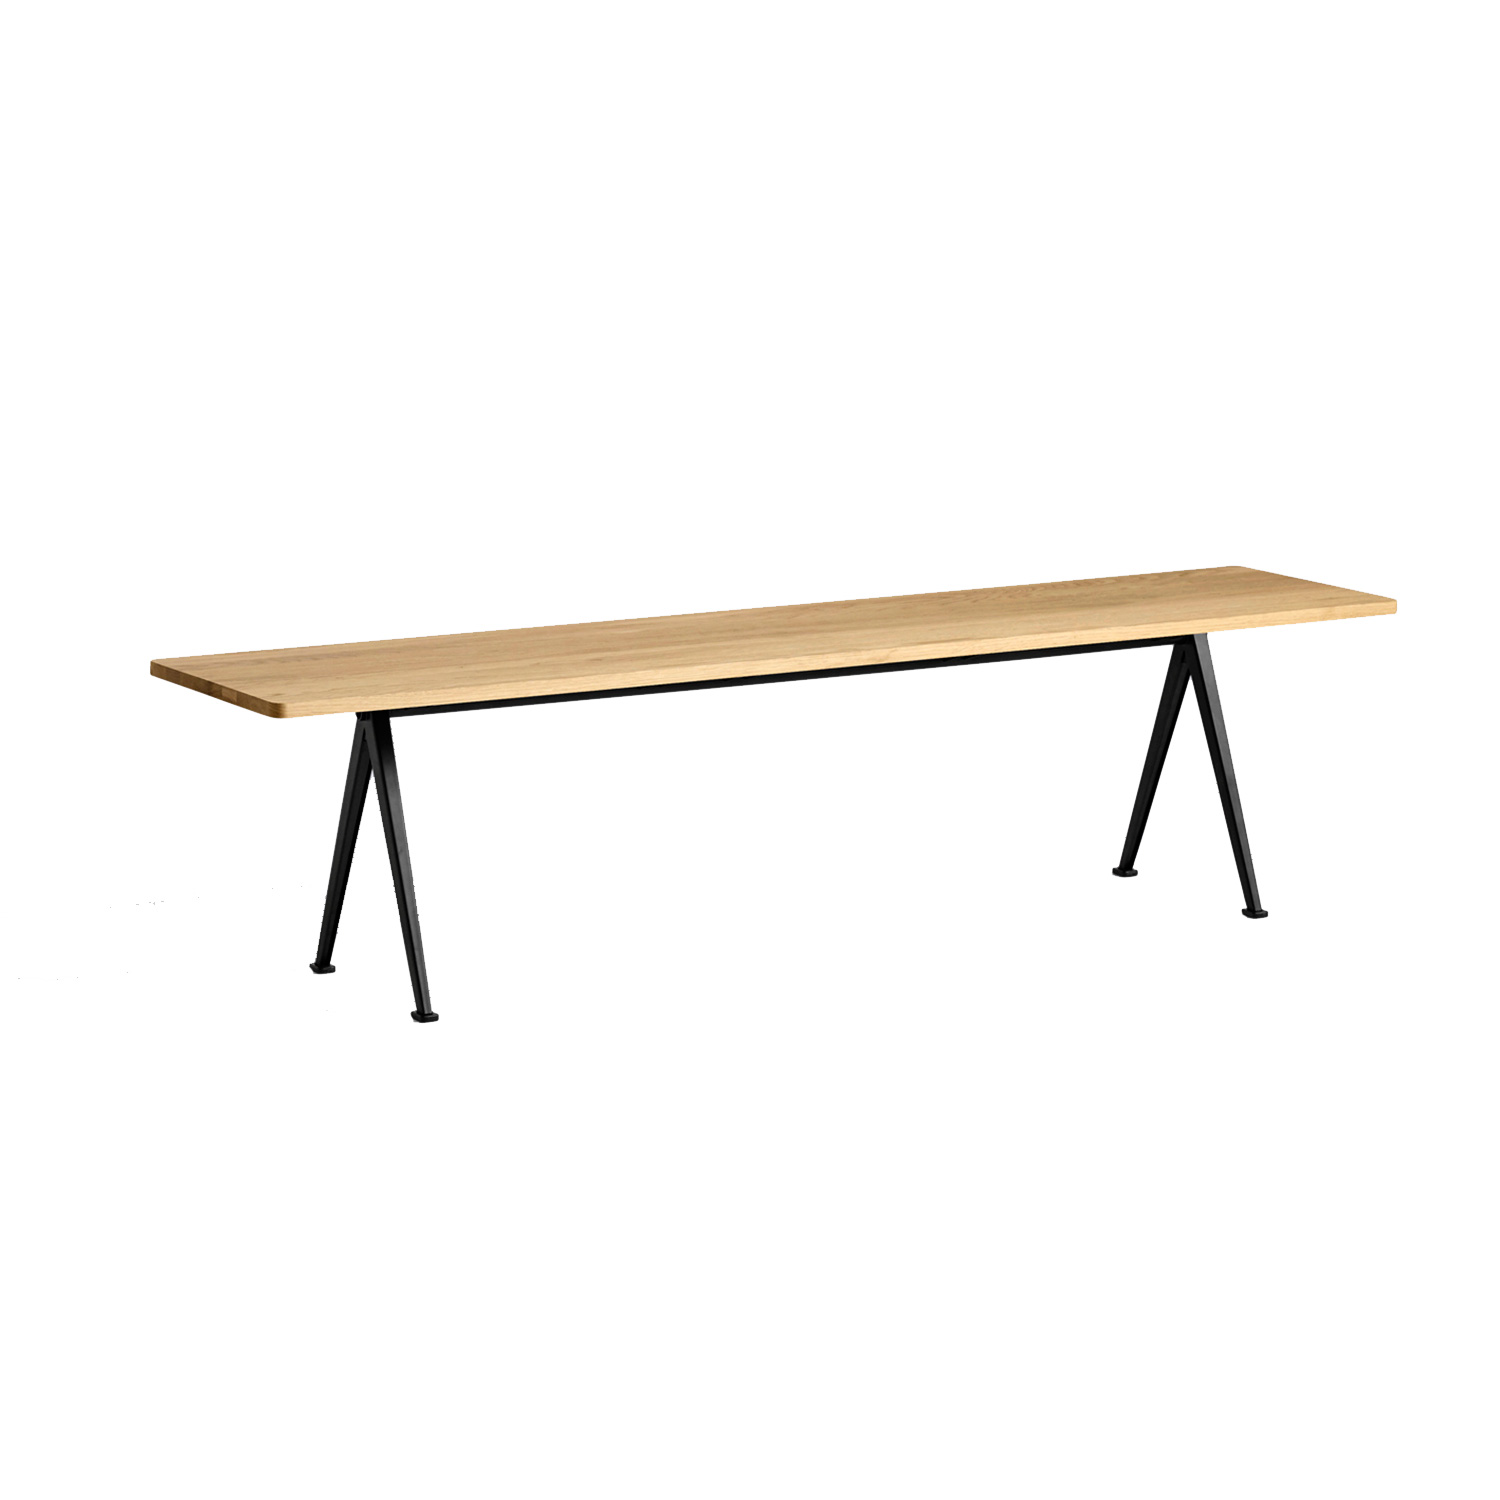 Pyramid bench 12 190x40, black frame/clear